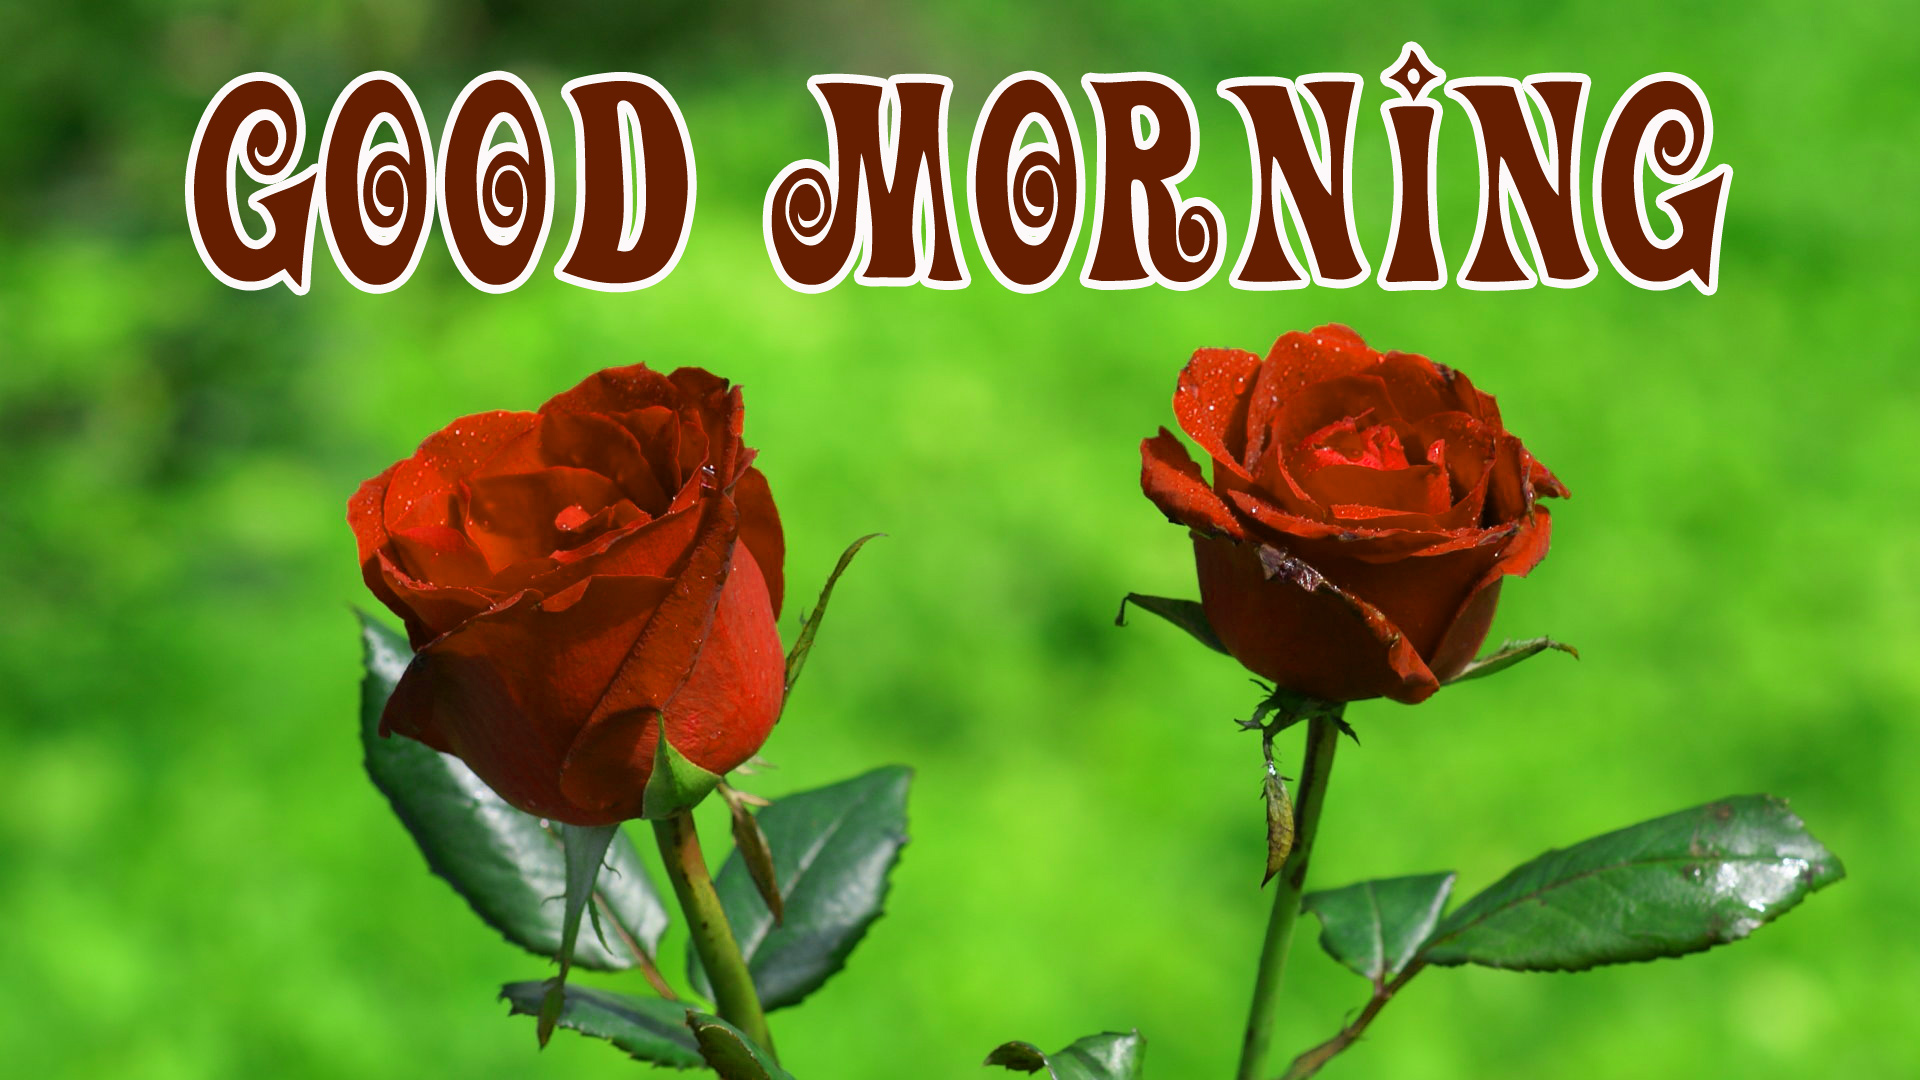 Good Morning Best Beautiful Photo Images for Whatsapp